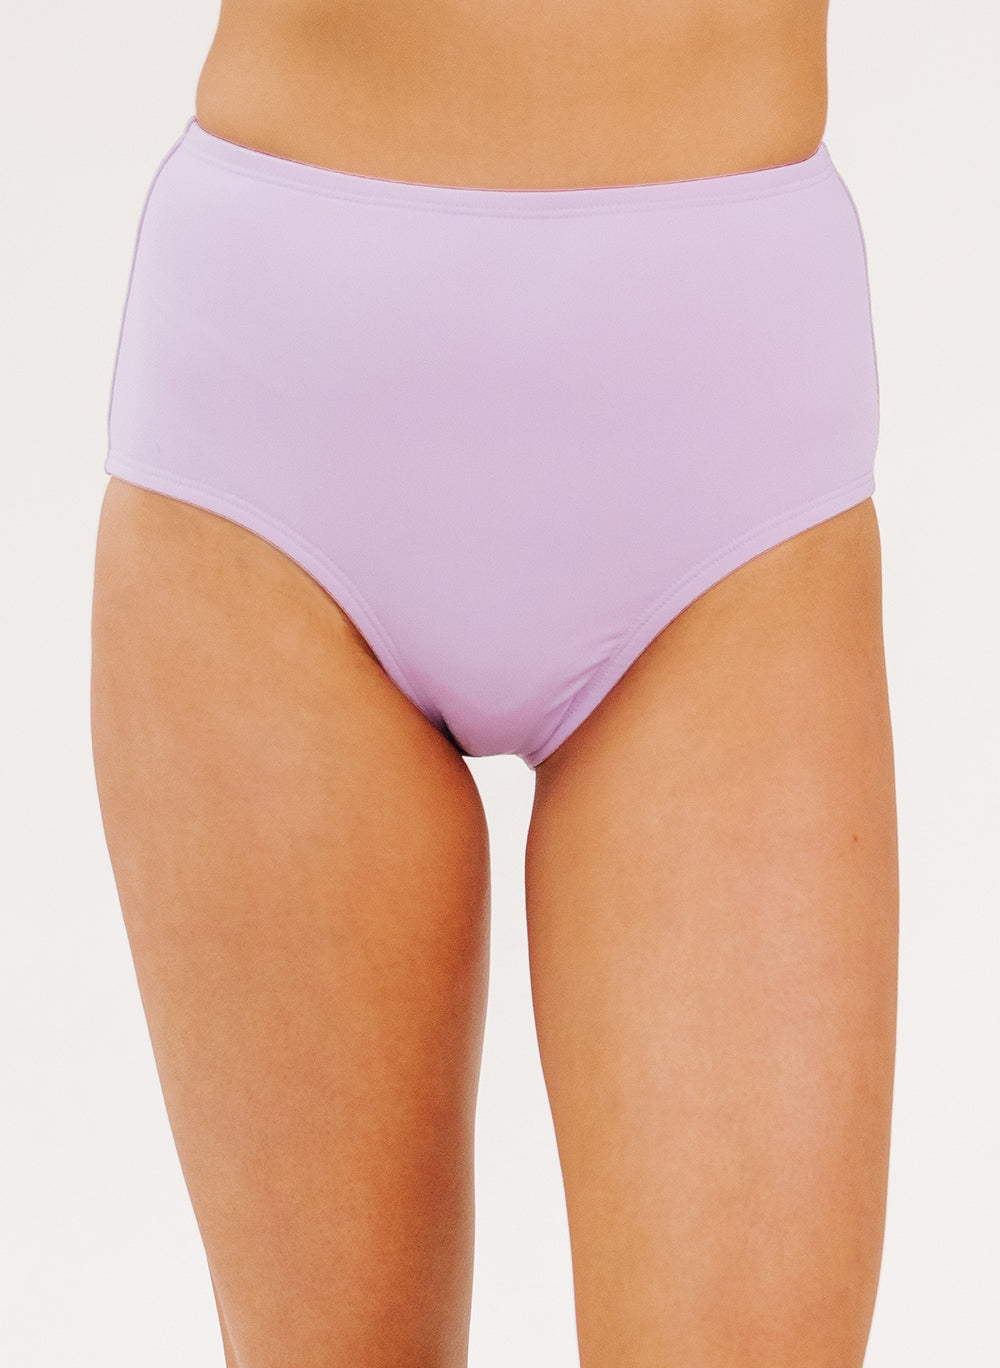 Lavender High-Waist Bottom